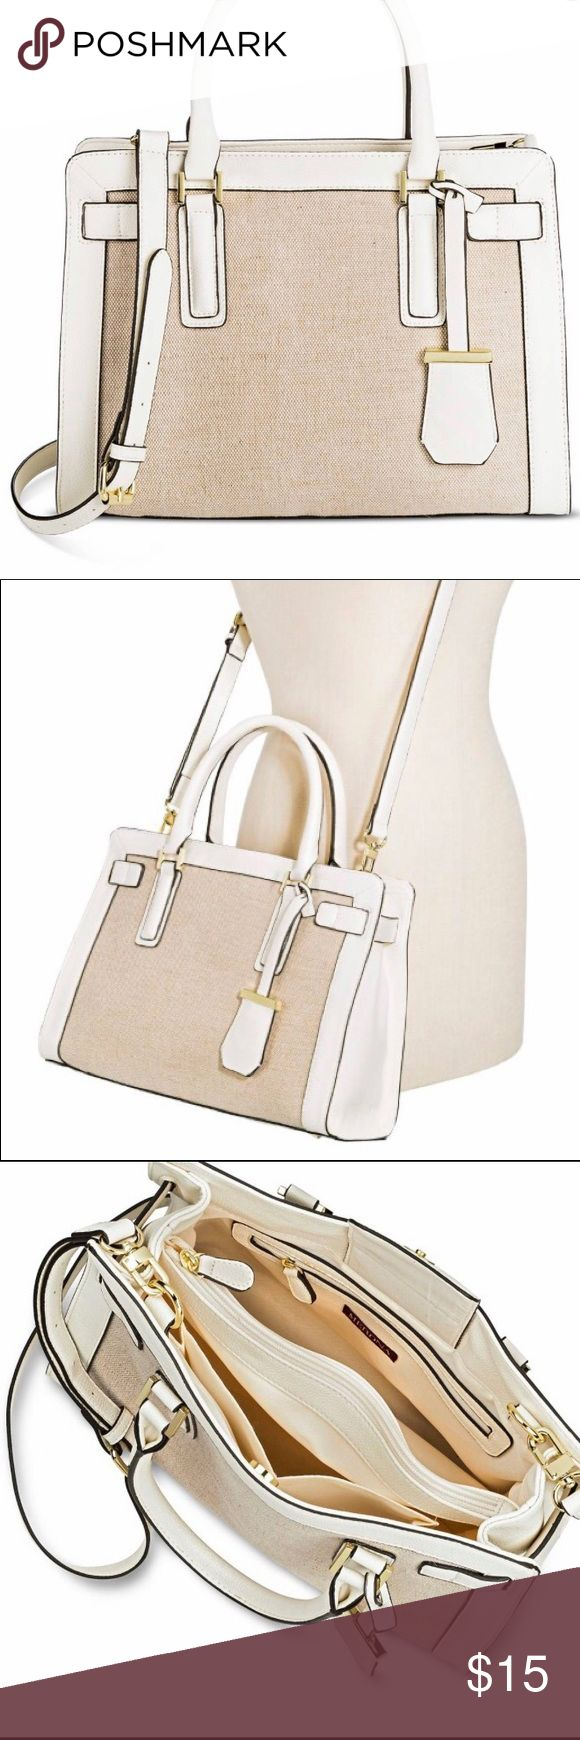 Merona faux leather tote Only worn a few times, this white and tan tote can go with any outfit and has impeccable storage space for all your traveling needs. 3 large pockets on inside (including a zipper pocket), and also a divider which doubles as a giant pocket. Willing to negotiate price Merona Bags Totes